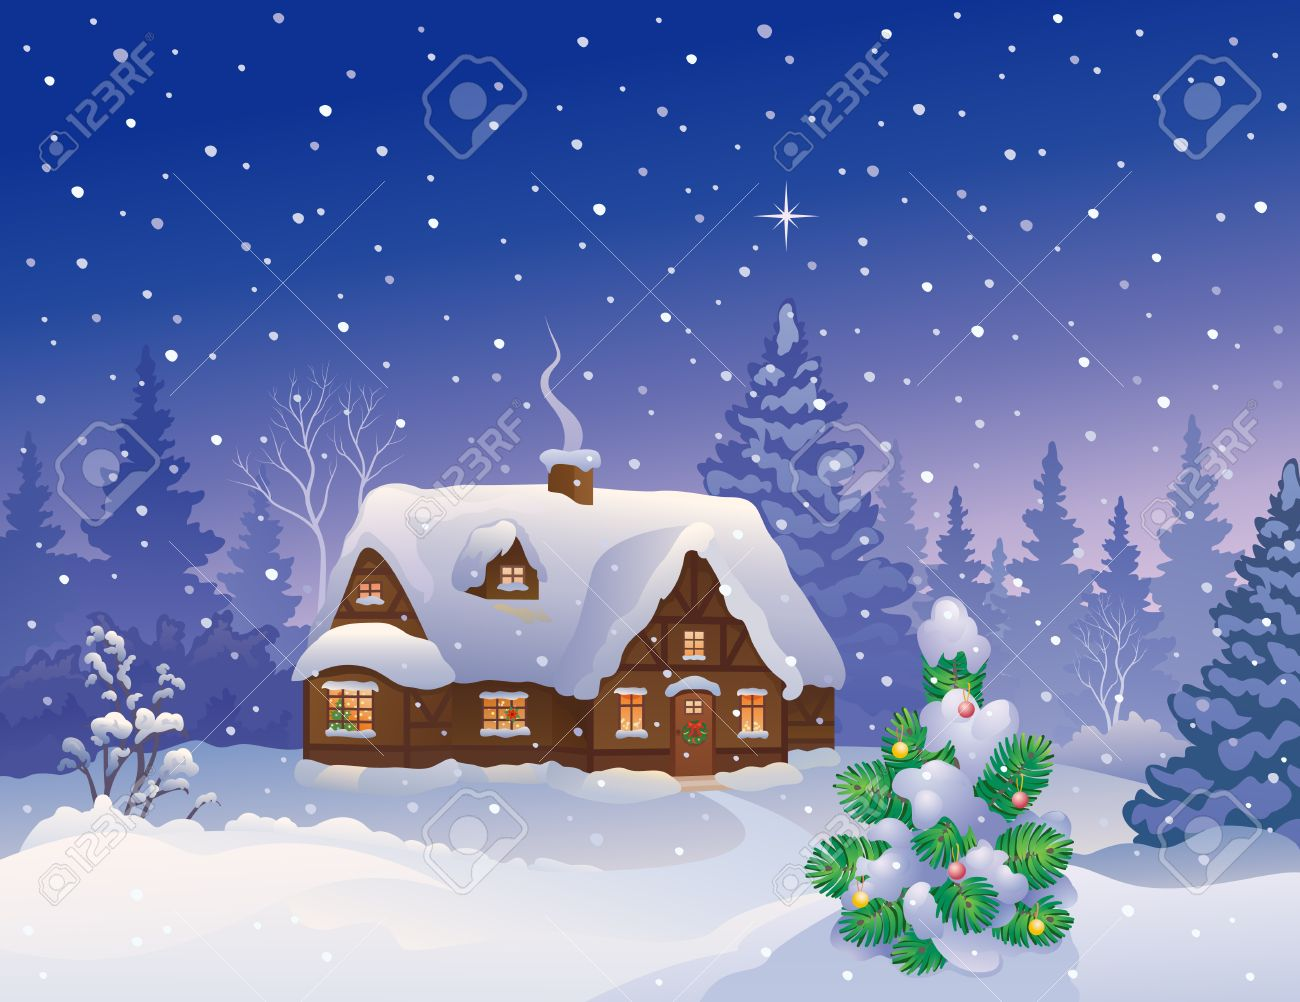 Vector illustration of a snowy Christmas cottage Stock Vector - 23039598